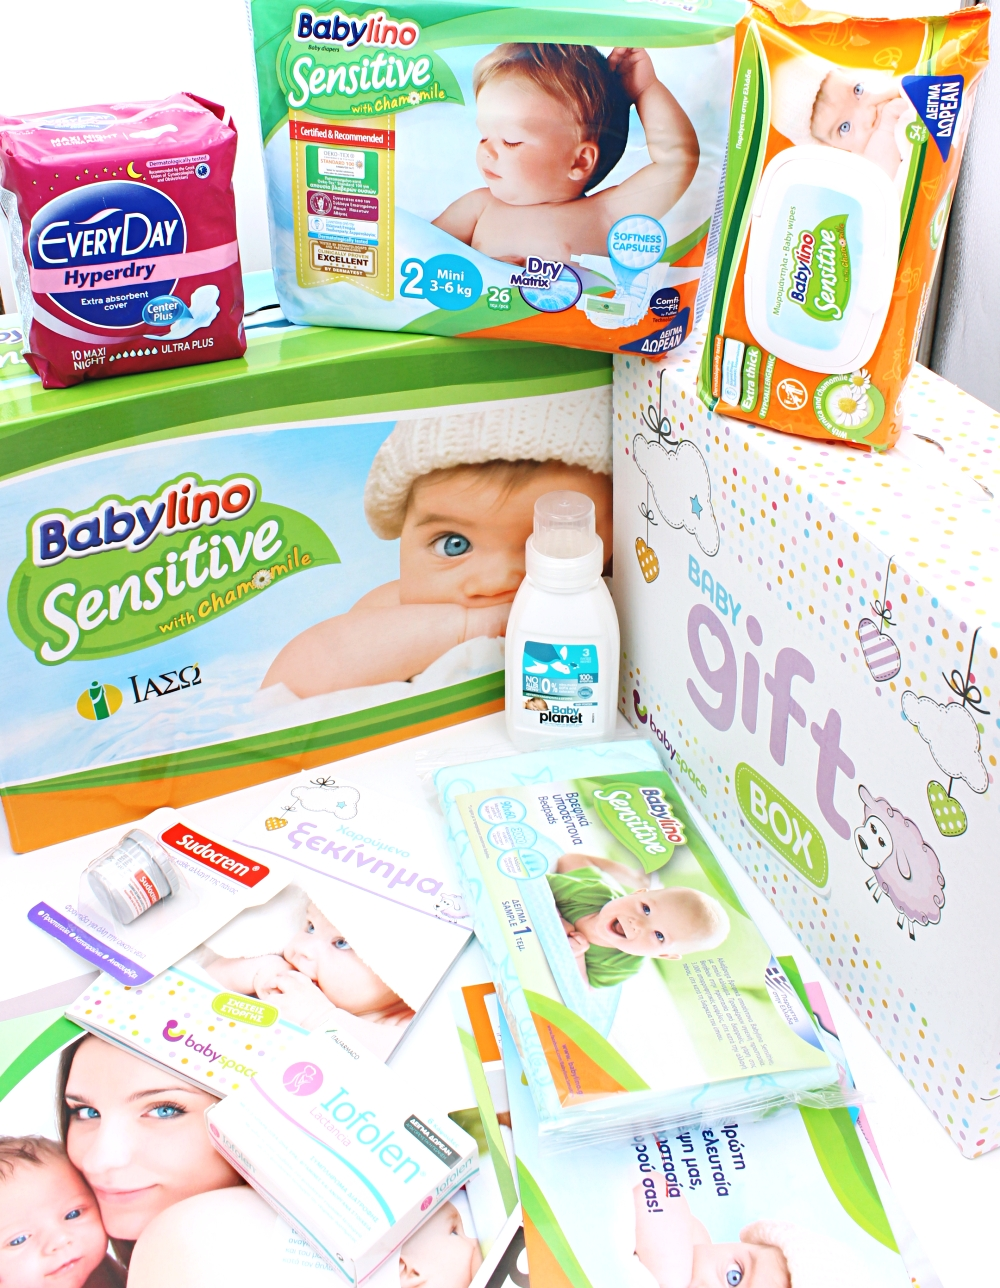 baby products testing, Babylino sensitive, Baby space GR, best diapers and baby stuff